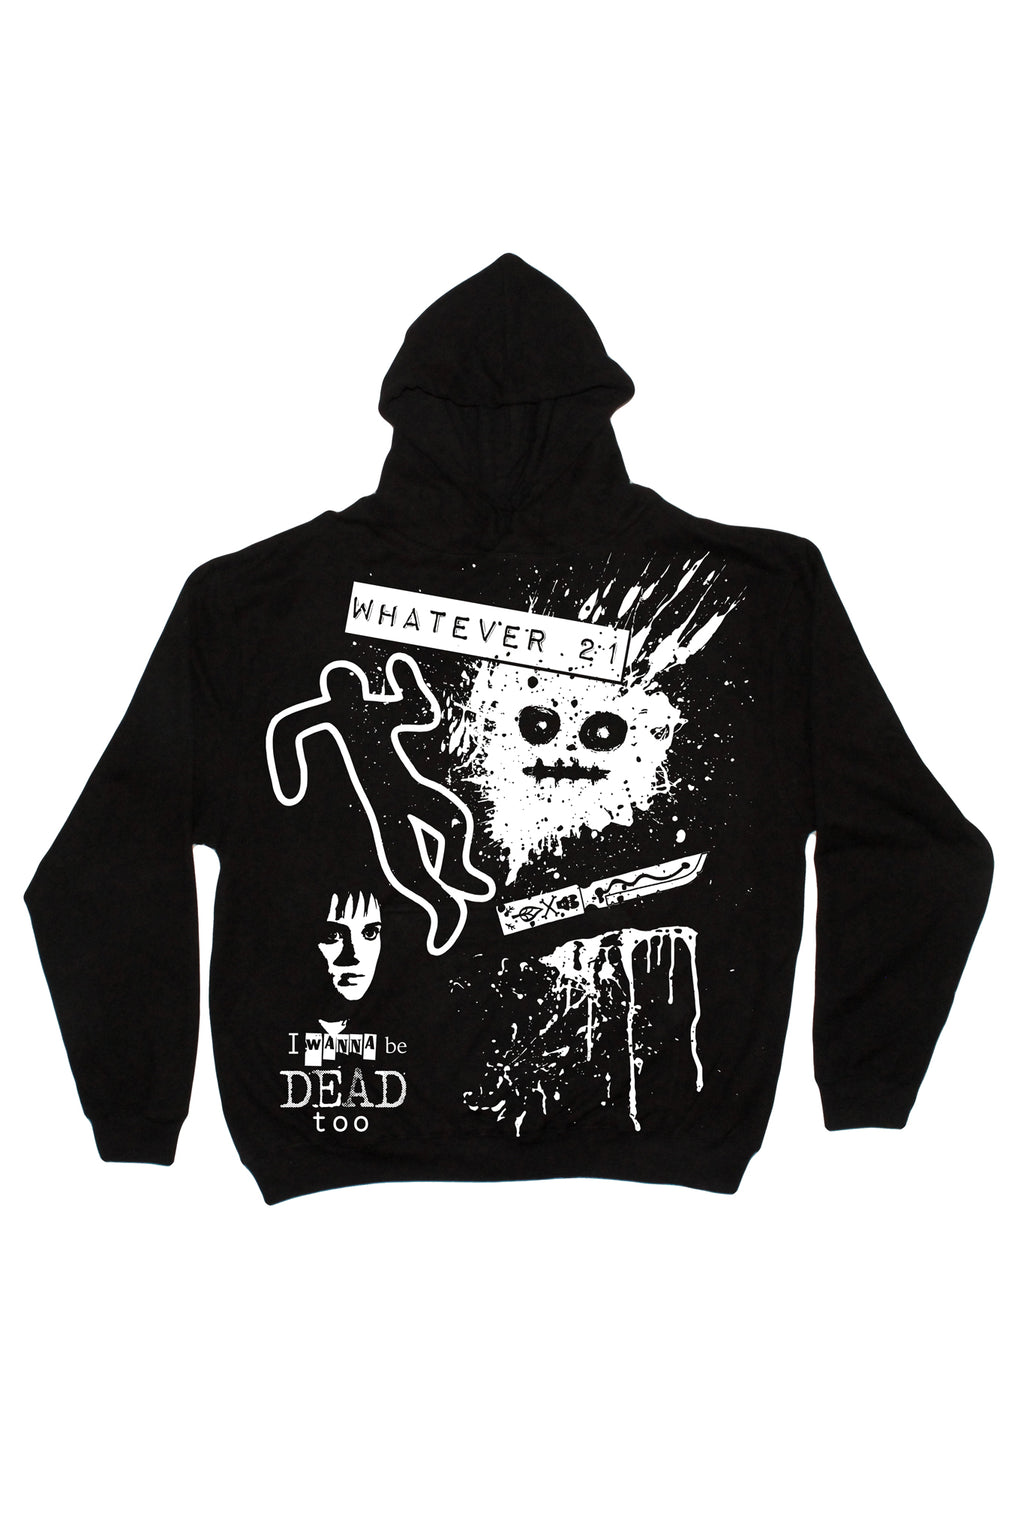 I Wanna Be Dead Too Hoodie